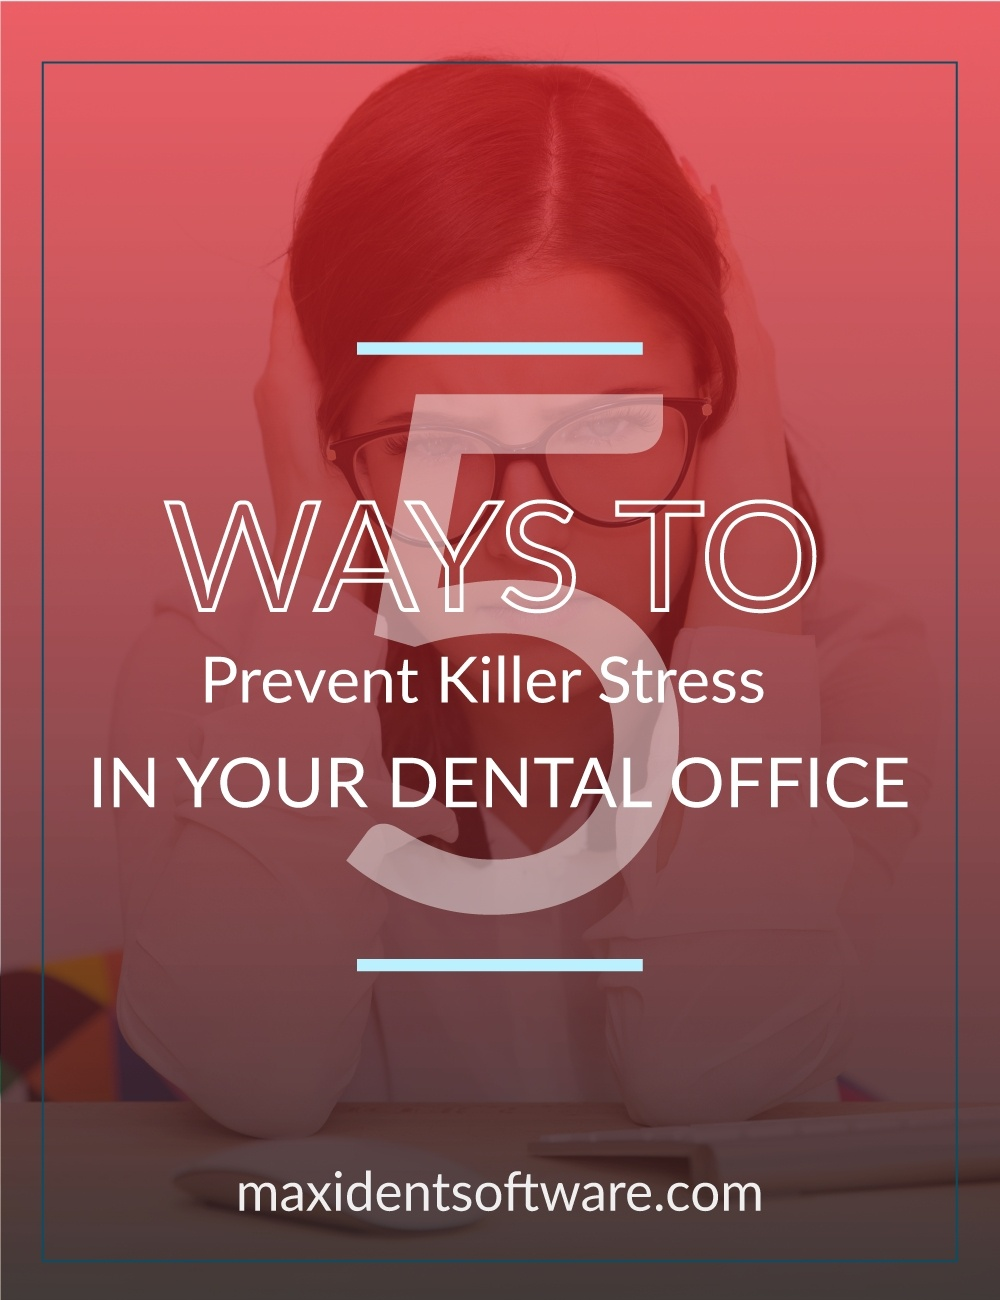 5 Ways to Prevent Killer Stress in your Dental Office